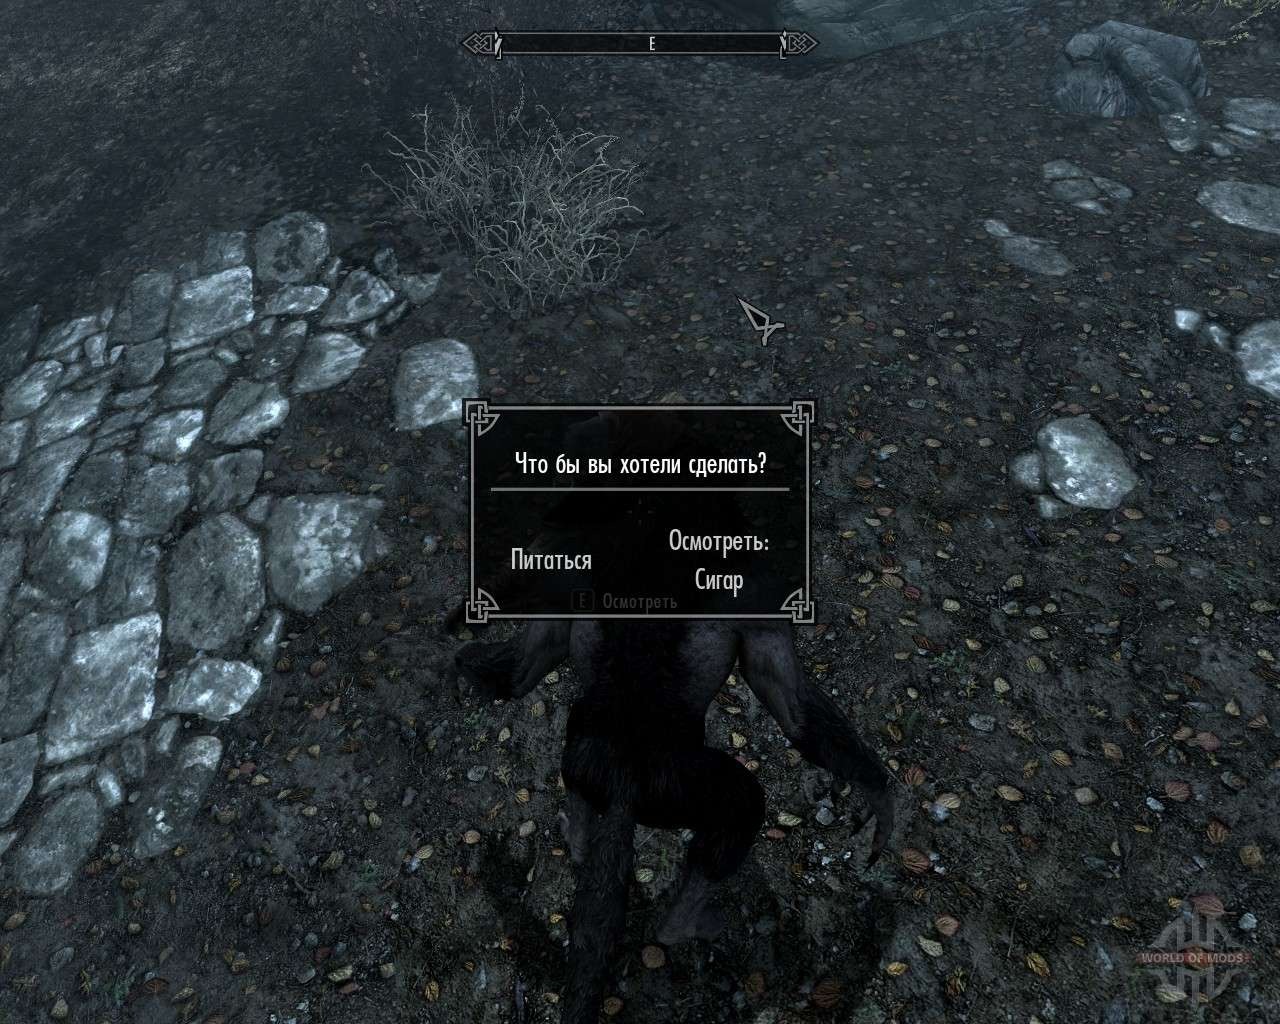 Search the map for the werewolf and vampire for Skyrim